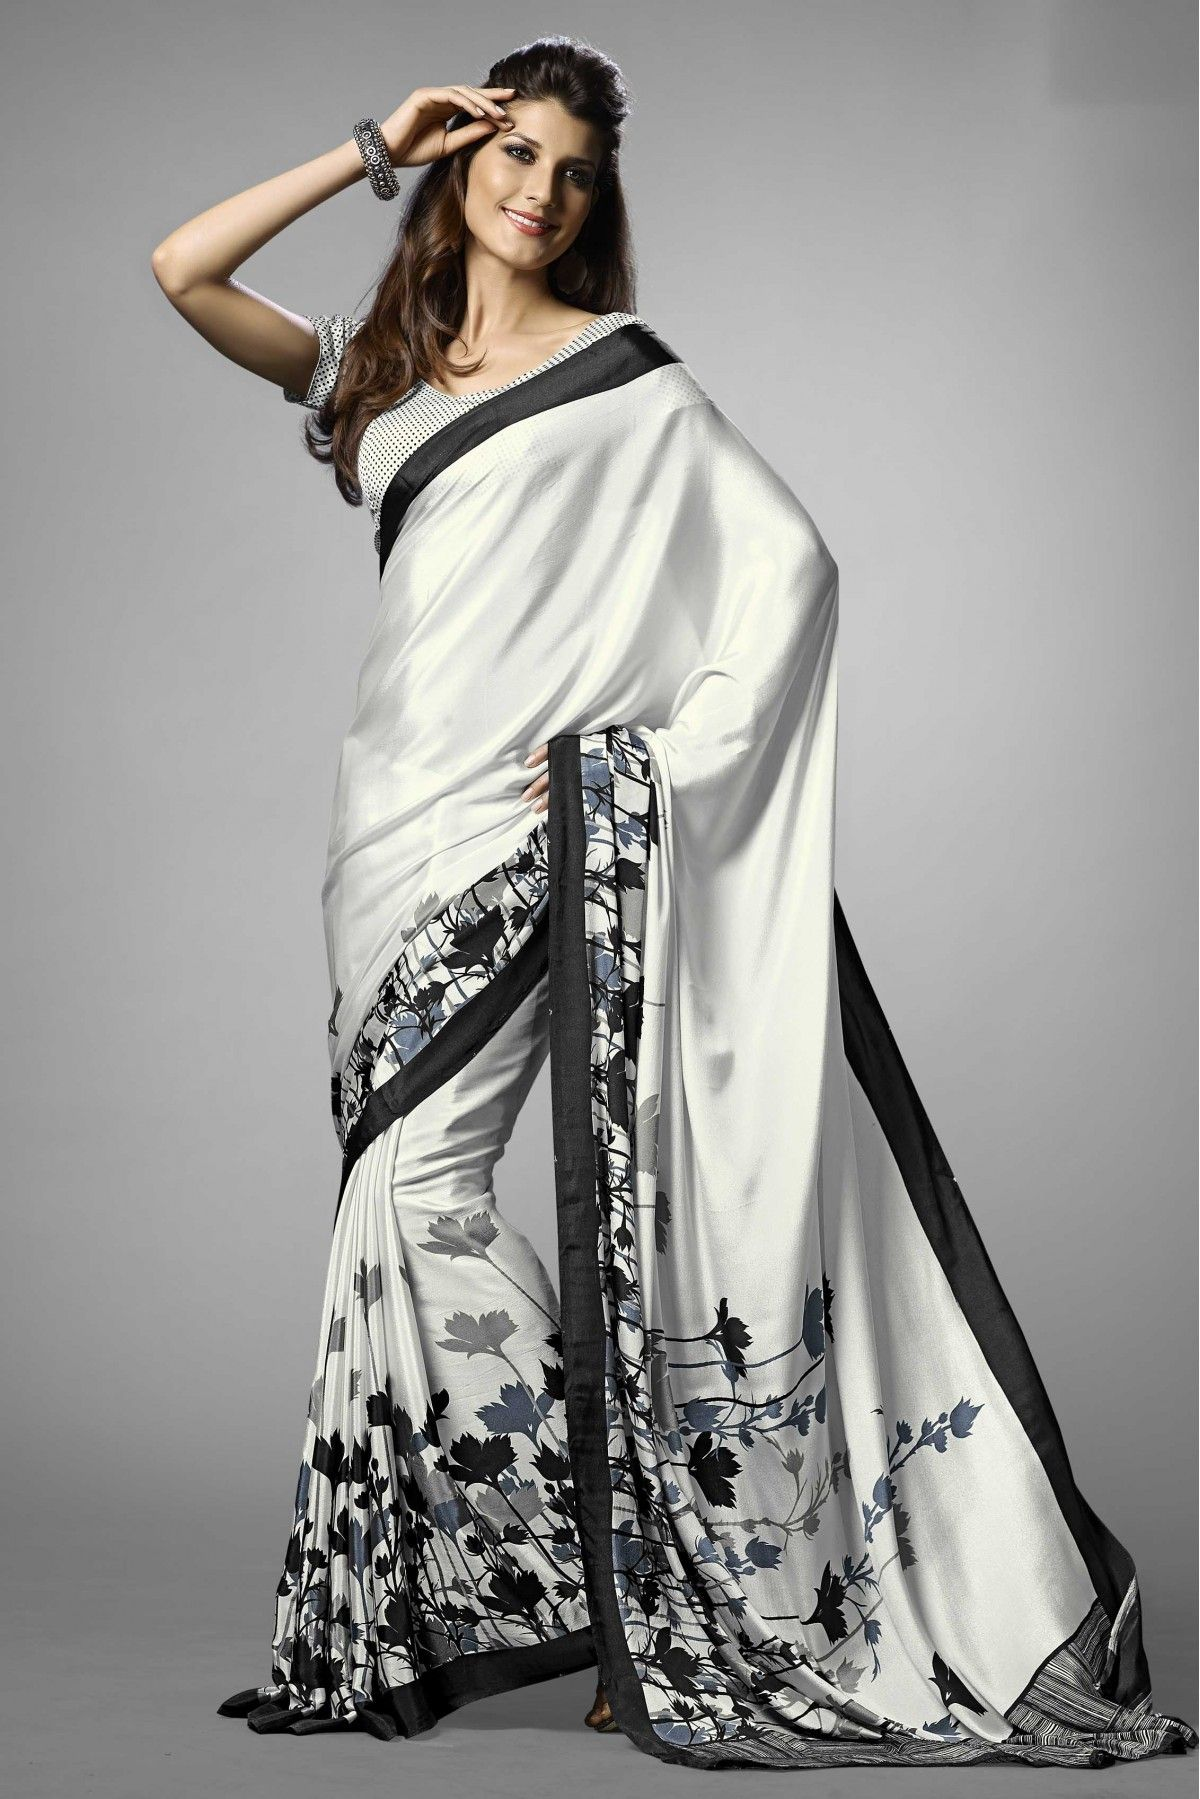 7e6d1fe5f5 Black and White Colour Crepe Fabric Saree Comes With Matching Blouse. This  Saree Is Crafted